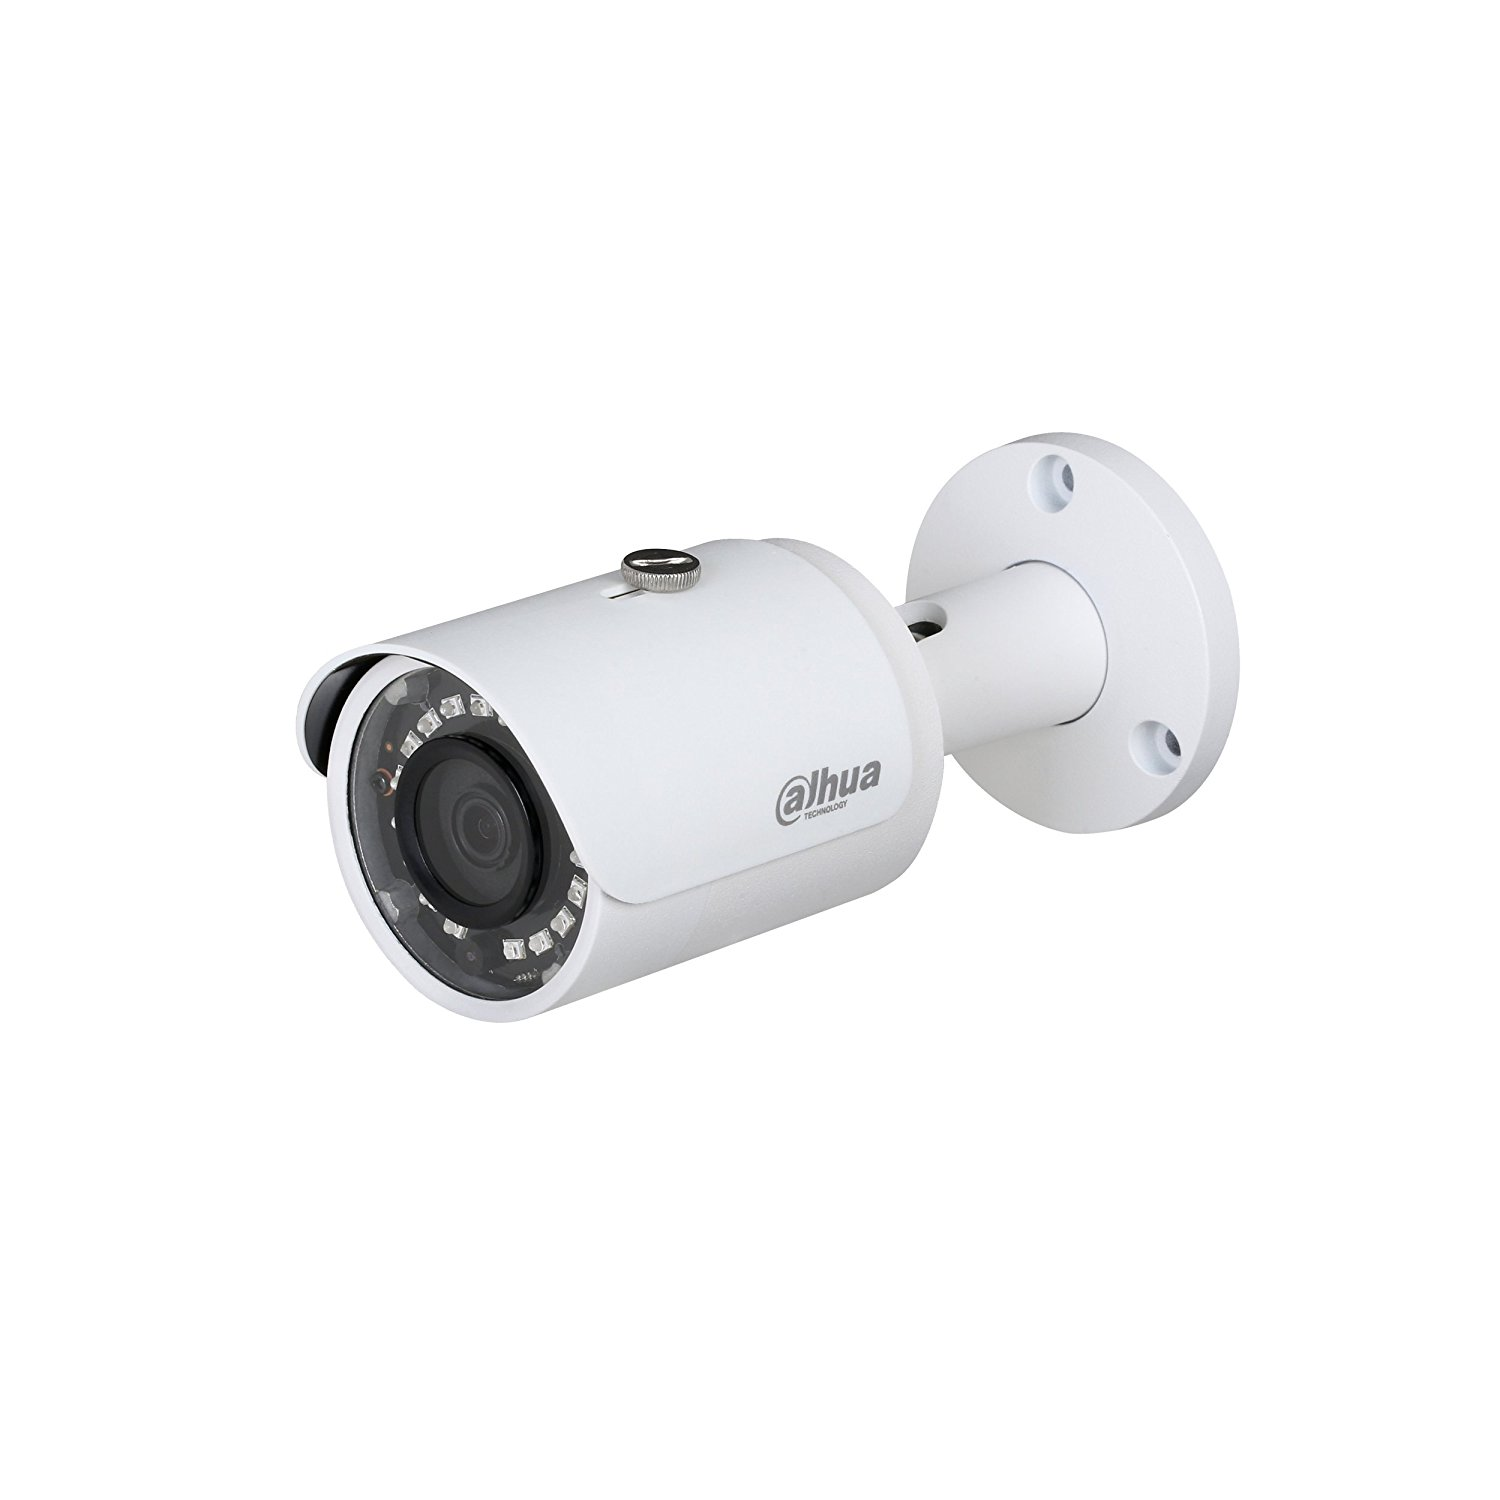 Dahua HFW1400SP-0360B Bullet Camera 4 MP Metal Body